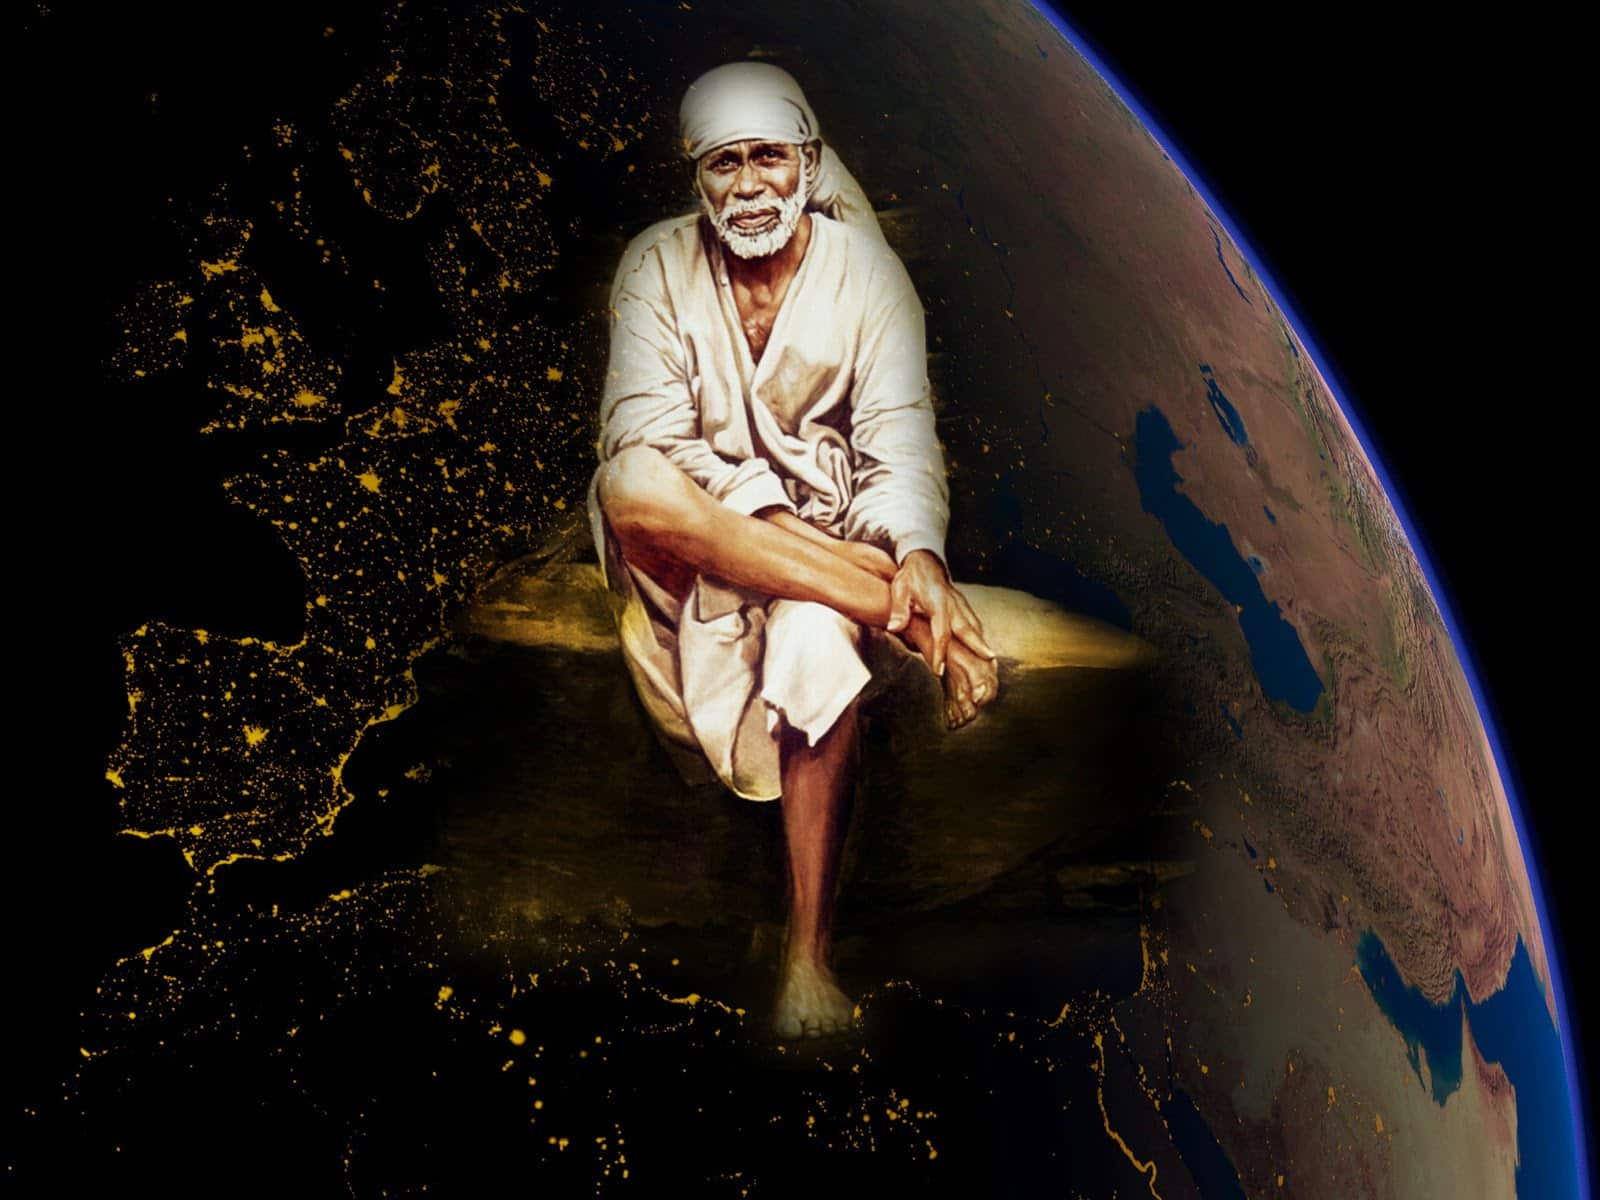 Fantastic Wallpaper Lord Sai Baba - sai-baba-simple-hd-wallpapers  Image_263553.jpg